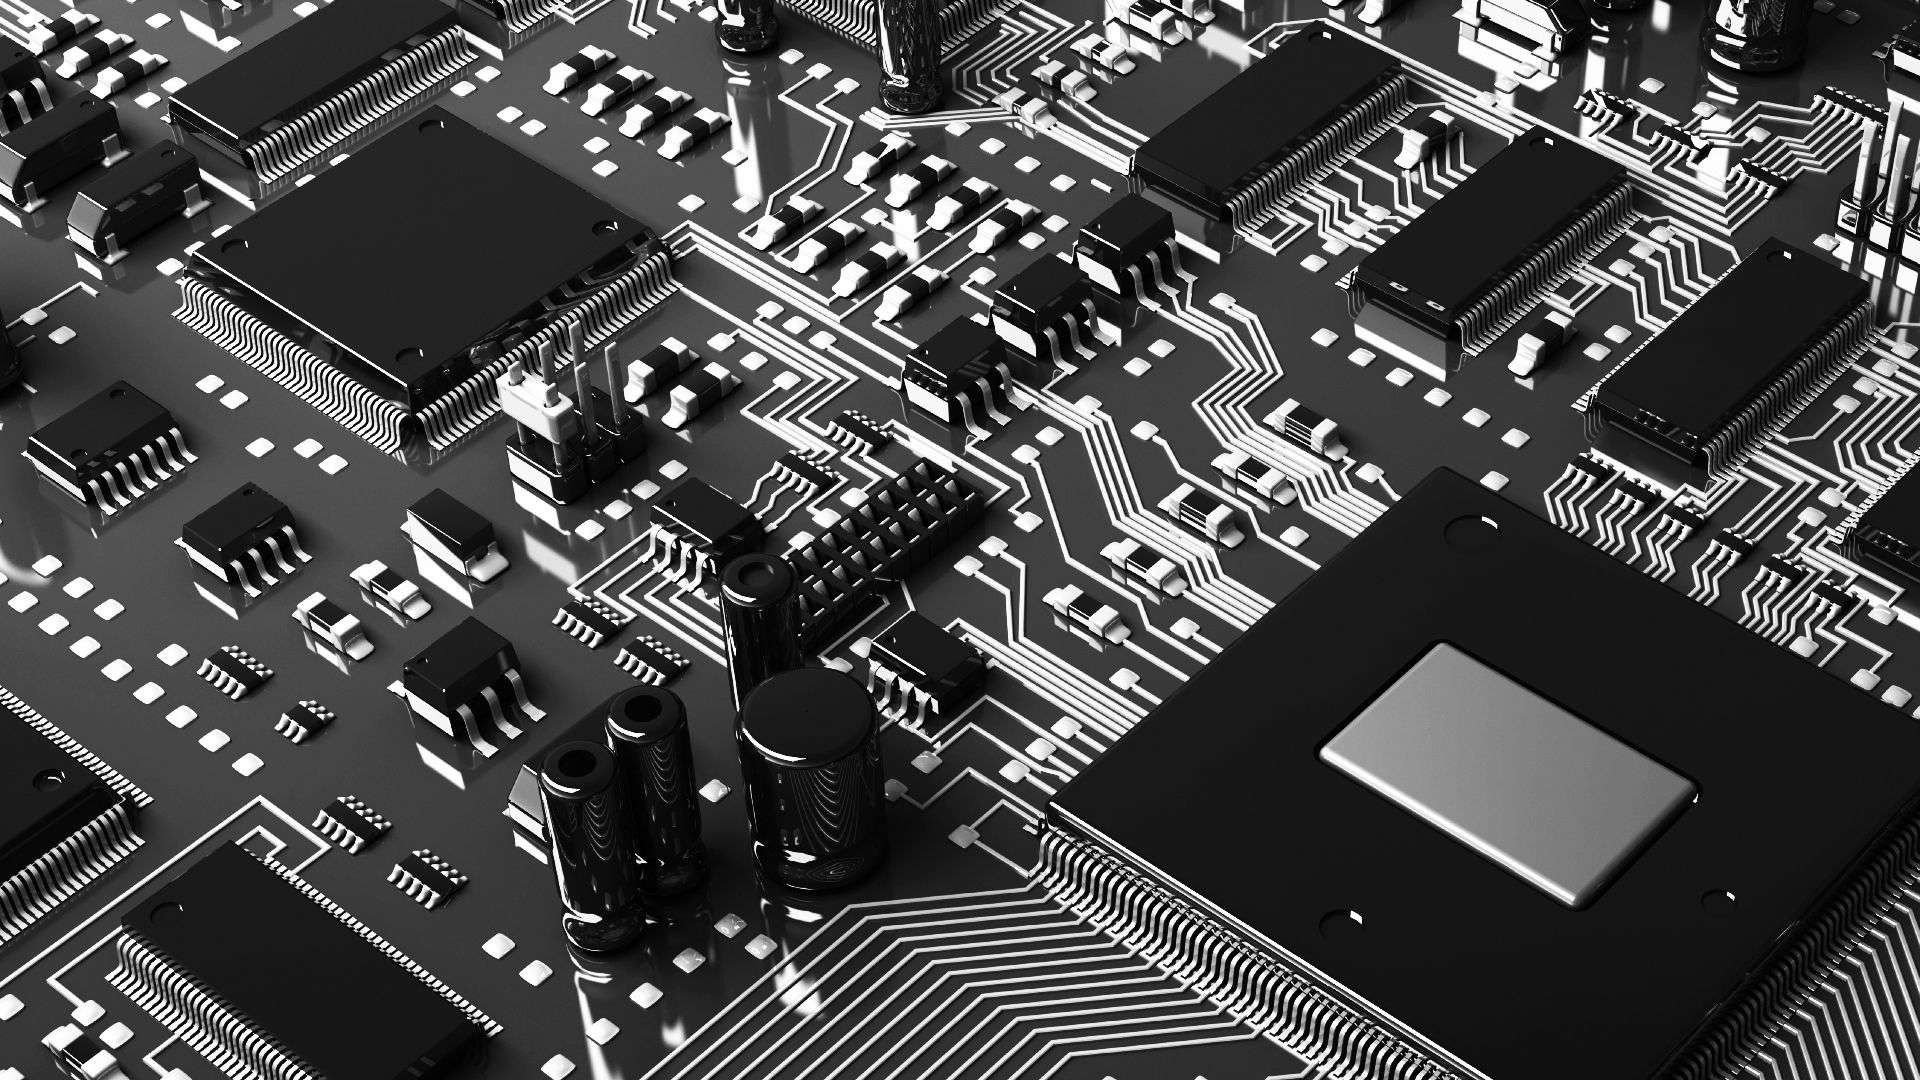 Circuit Board Wallpapers Top Free Circuit Board Backgrounds Wallpaperaccess